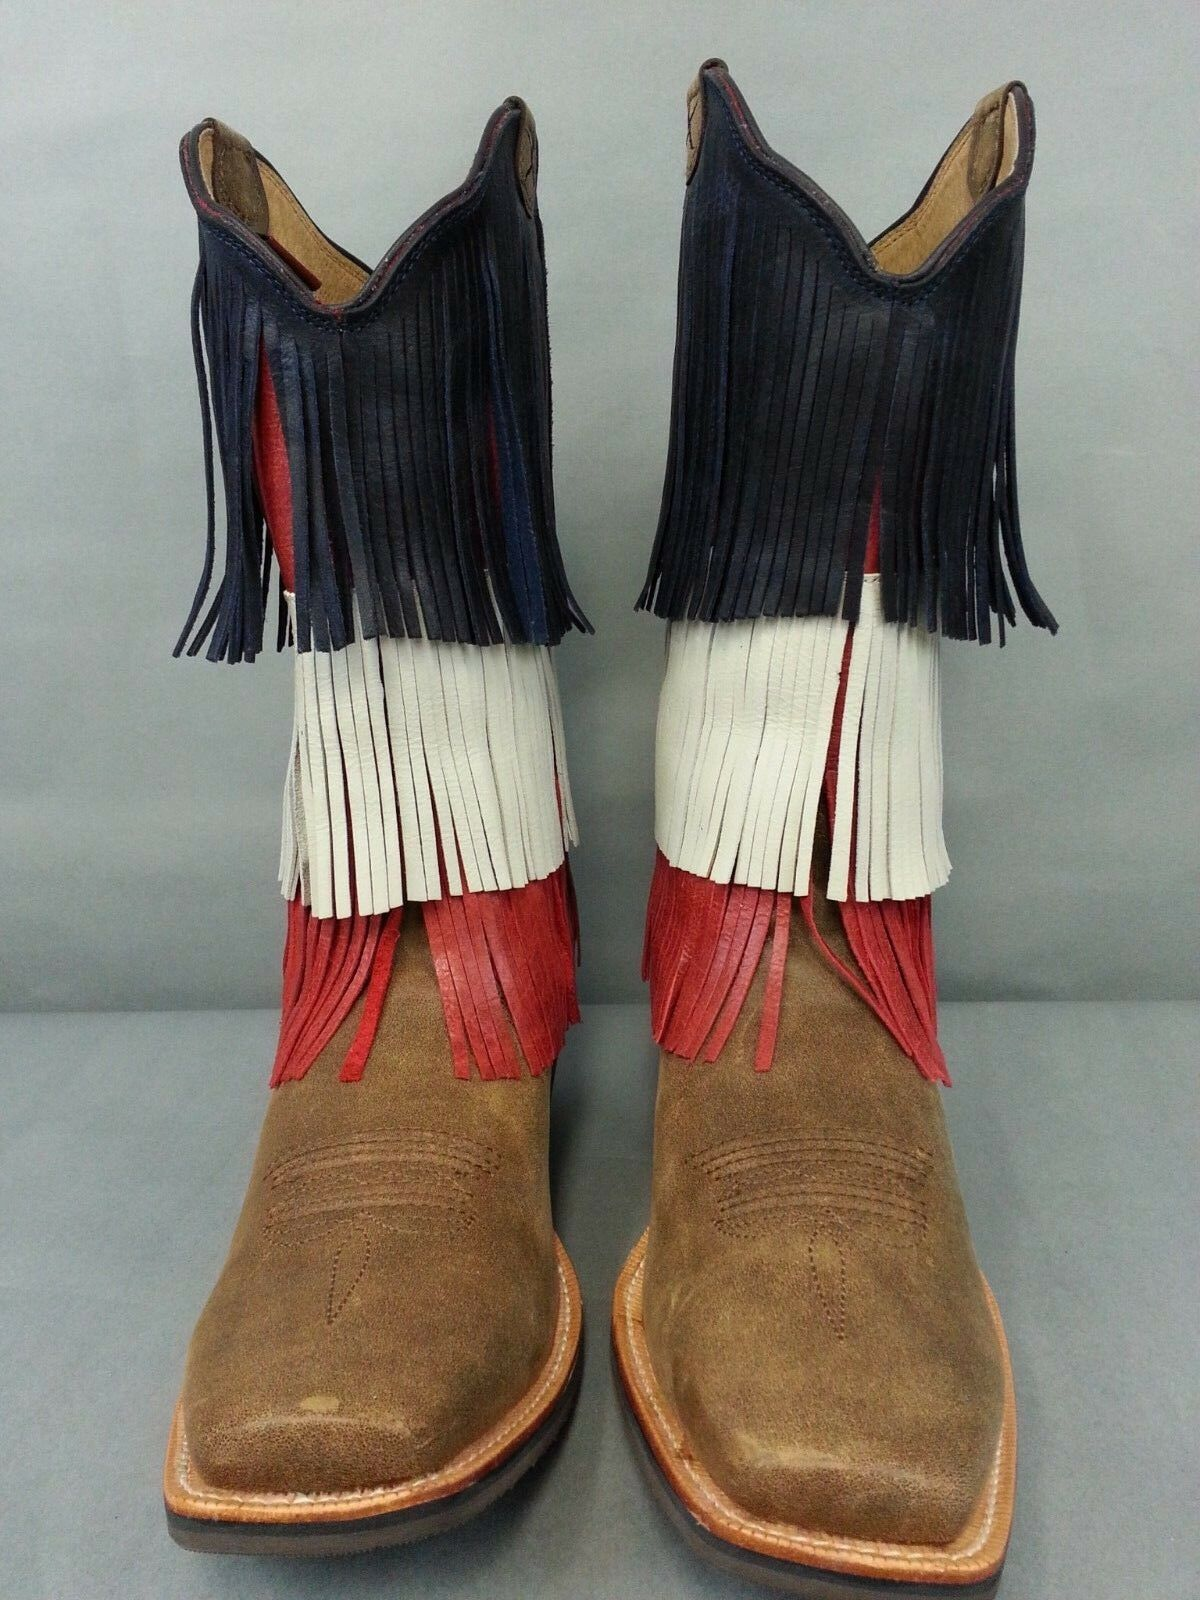 NWOB Twisted X Ruff Stock VFW Fringe Fringe VFW Cowgirl Boots Square Toe Red White Blue 11 d5d83a